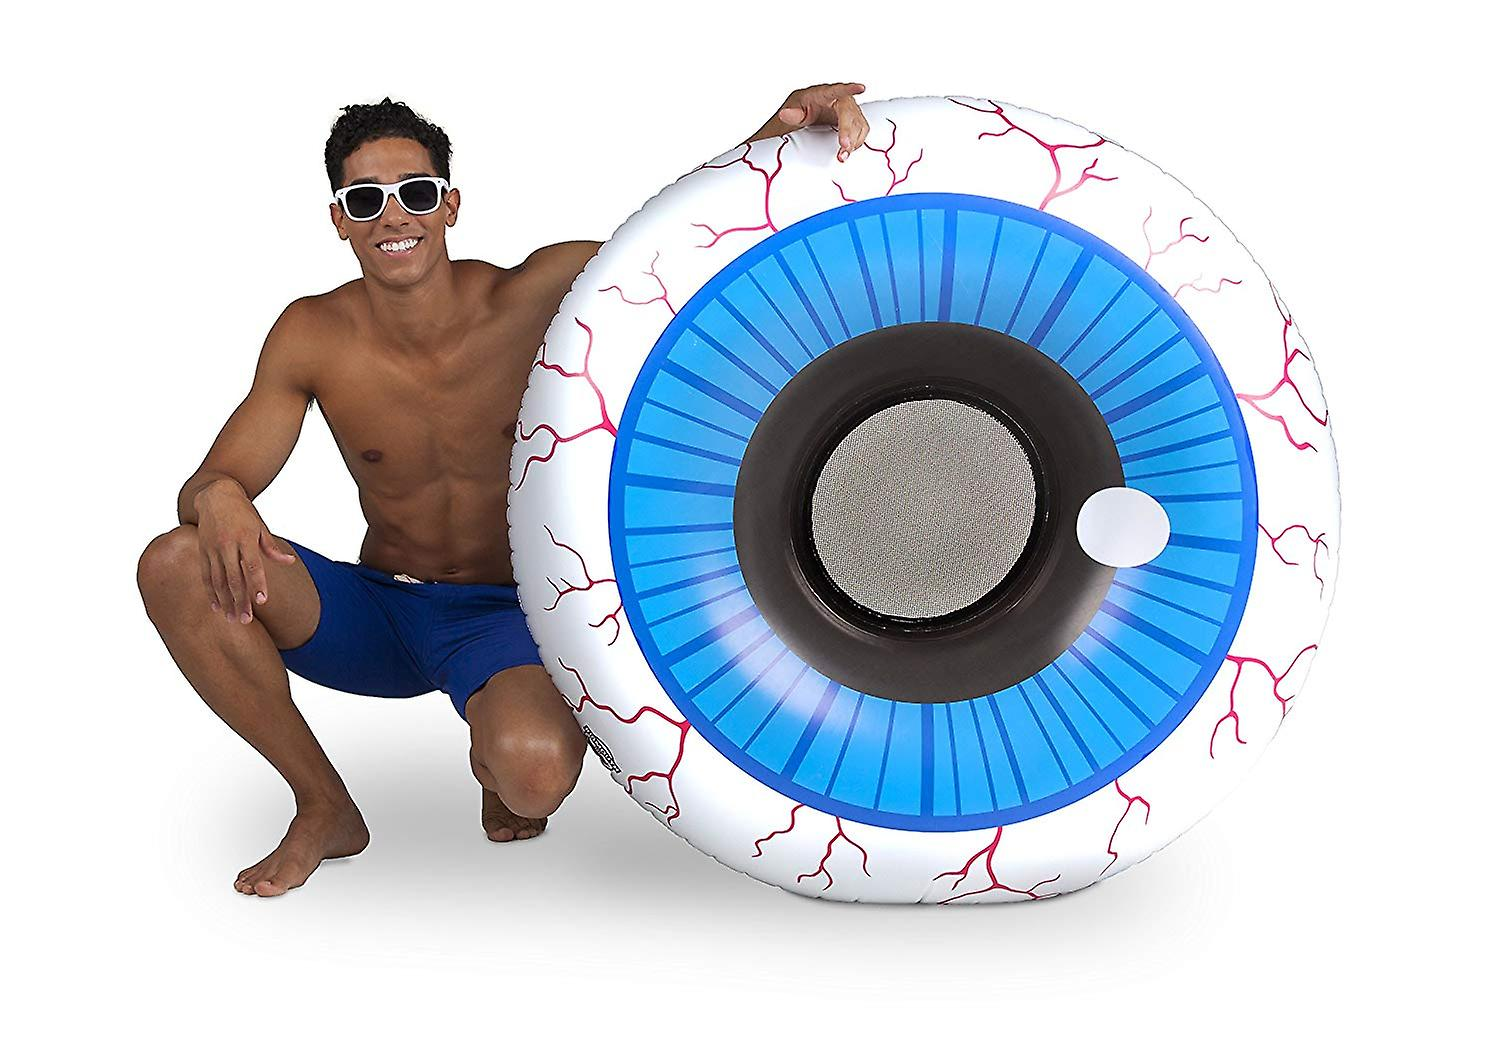 Bigmouth Inc - Giant Eyeball Pool Float